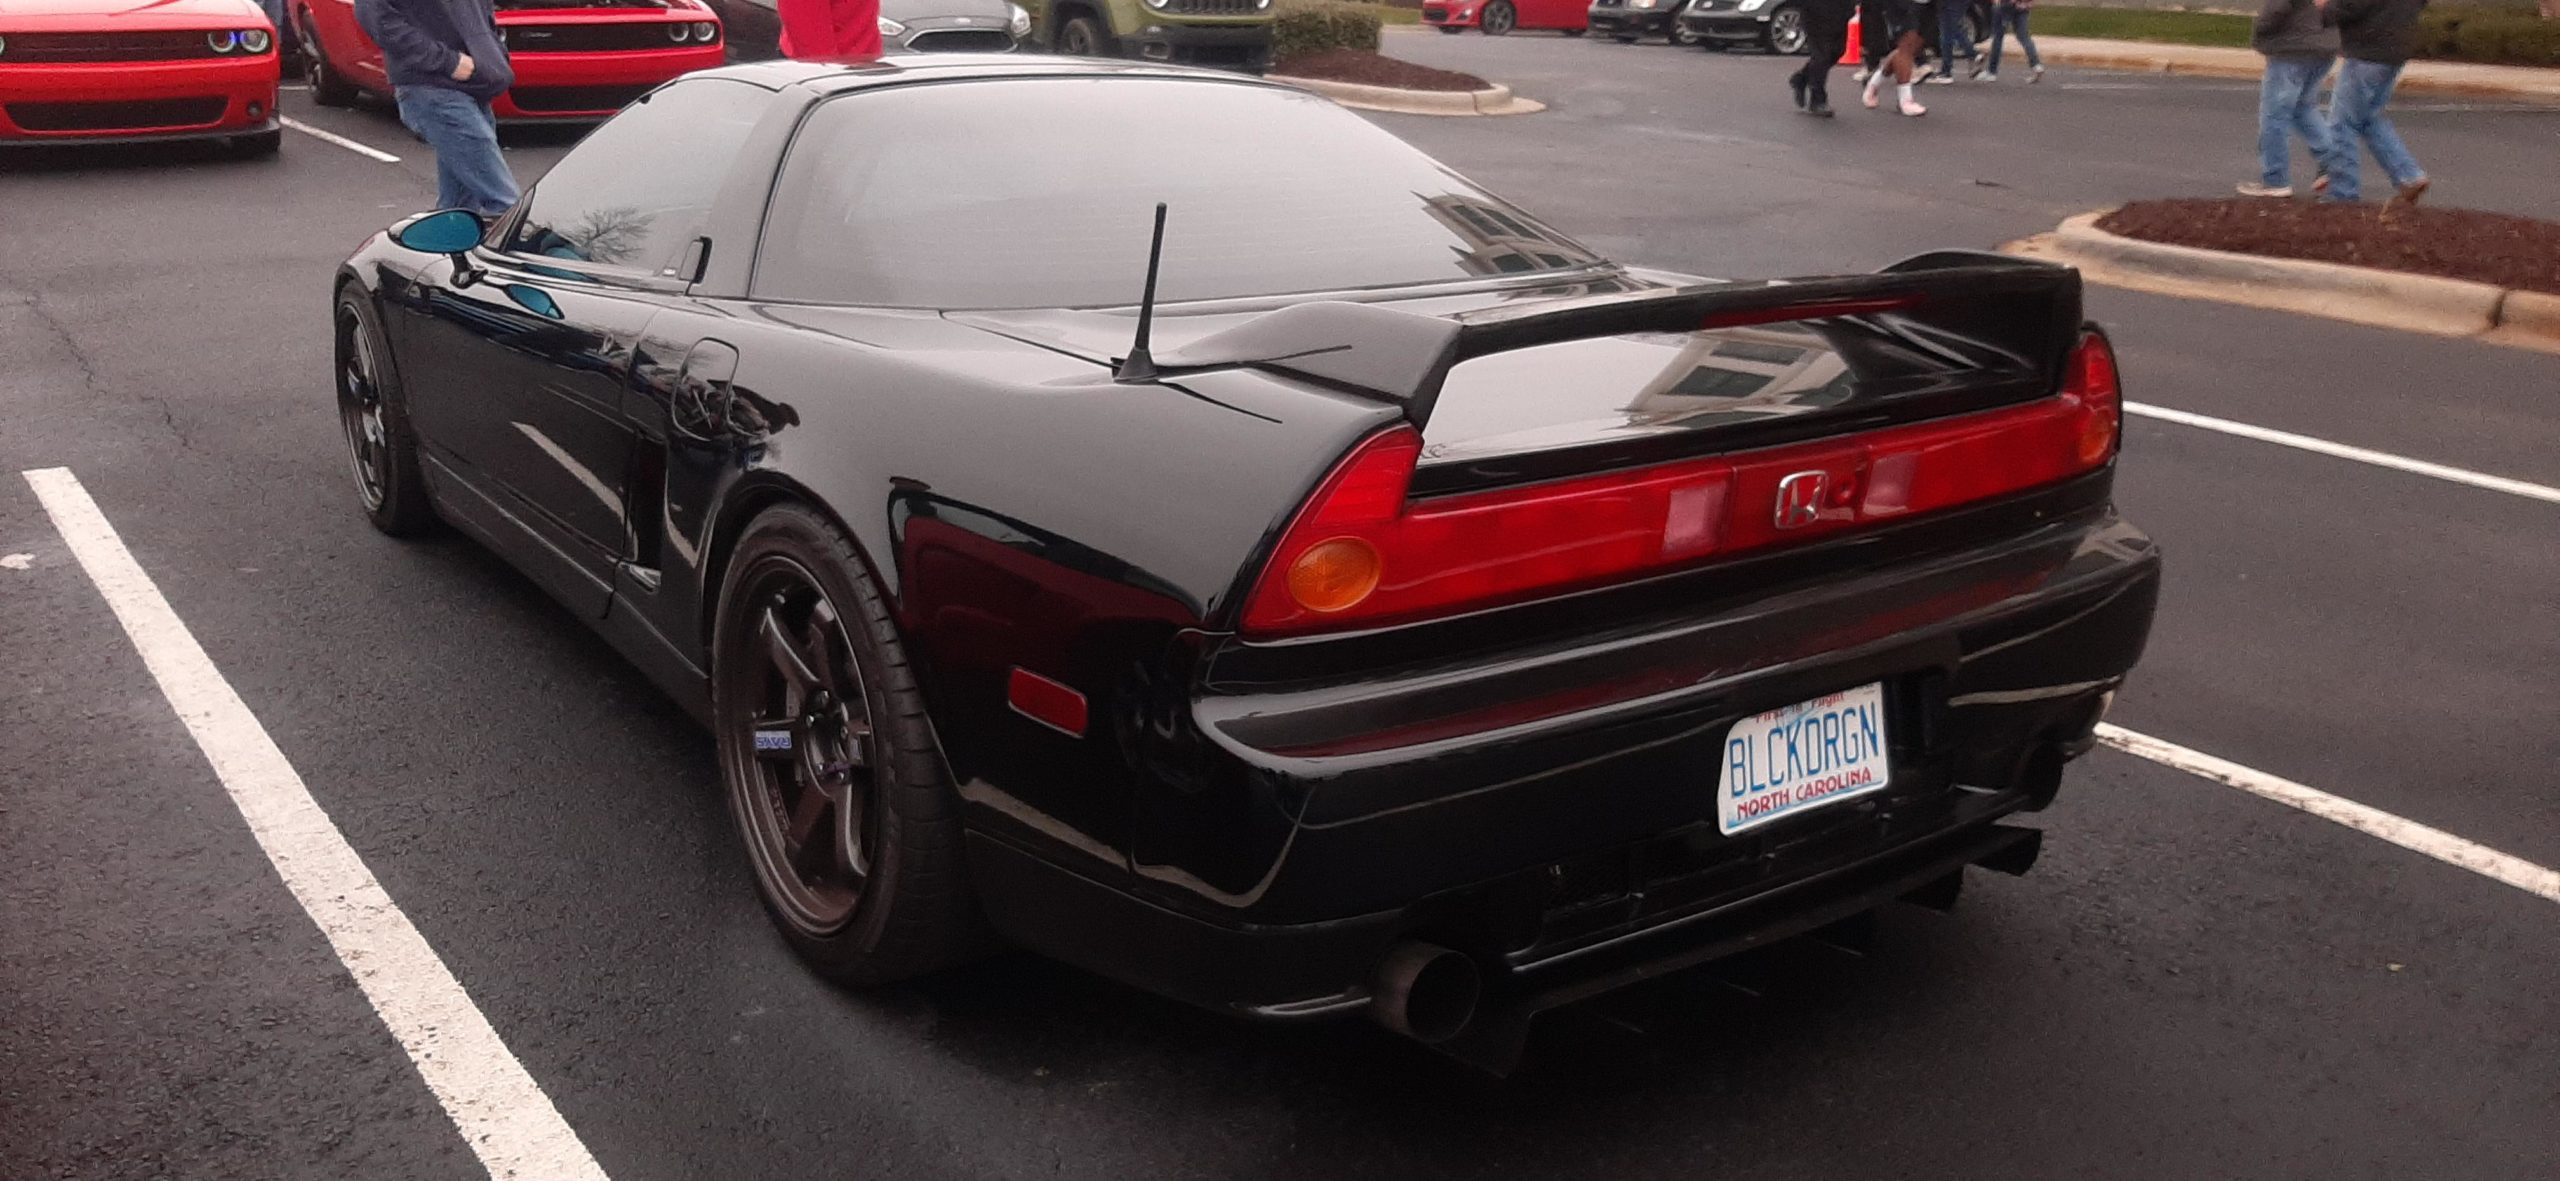 Honda NSX at Cars and Coffee, NC